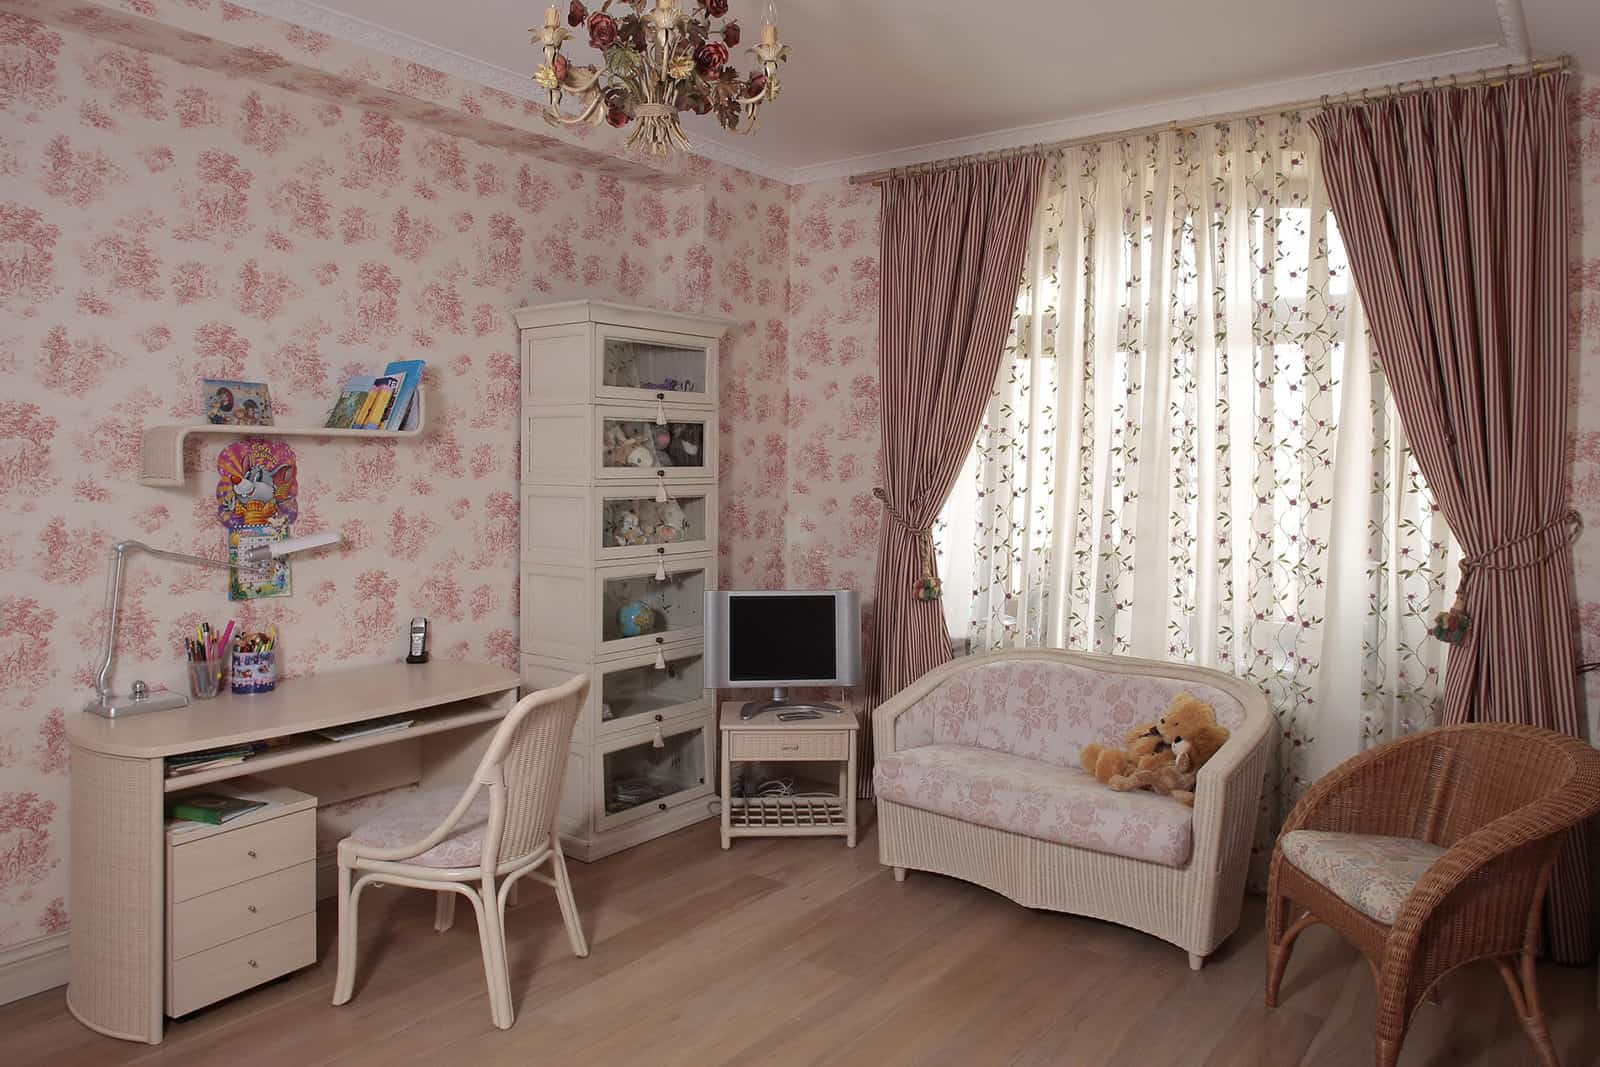 Kids room ideas french country decor for Accents decoration